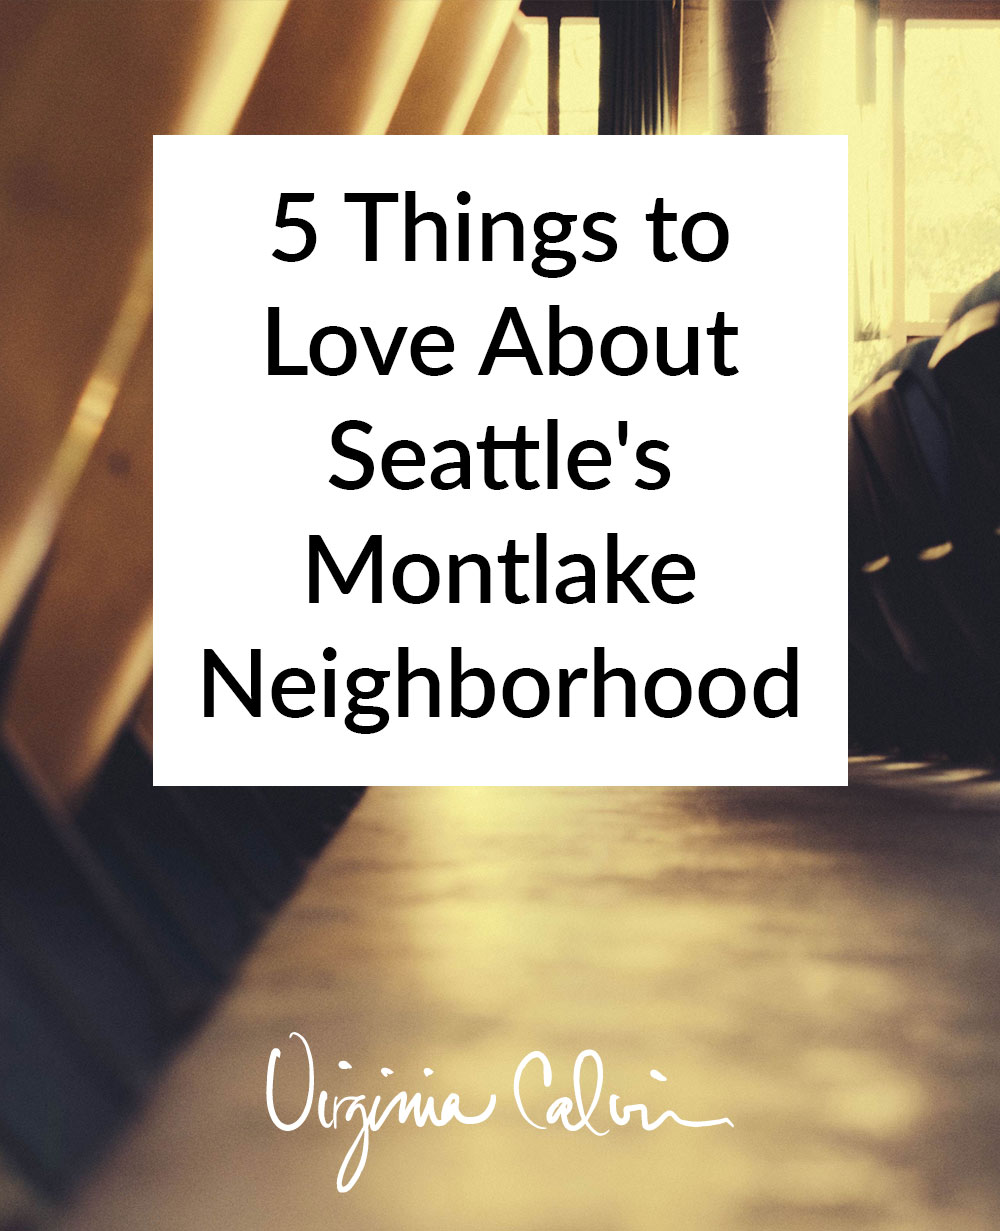 5 Things to Love About Seattle's Montlake Neighborhood | Virginia Calvin | Seattle Real Estate